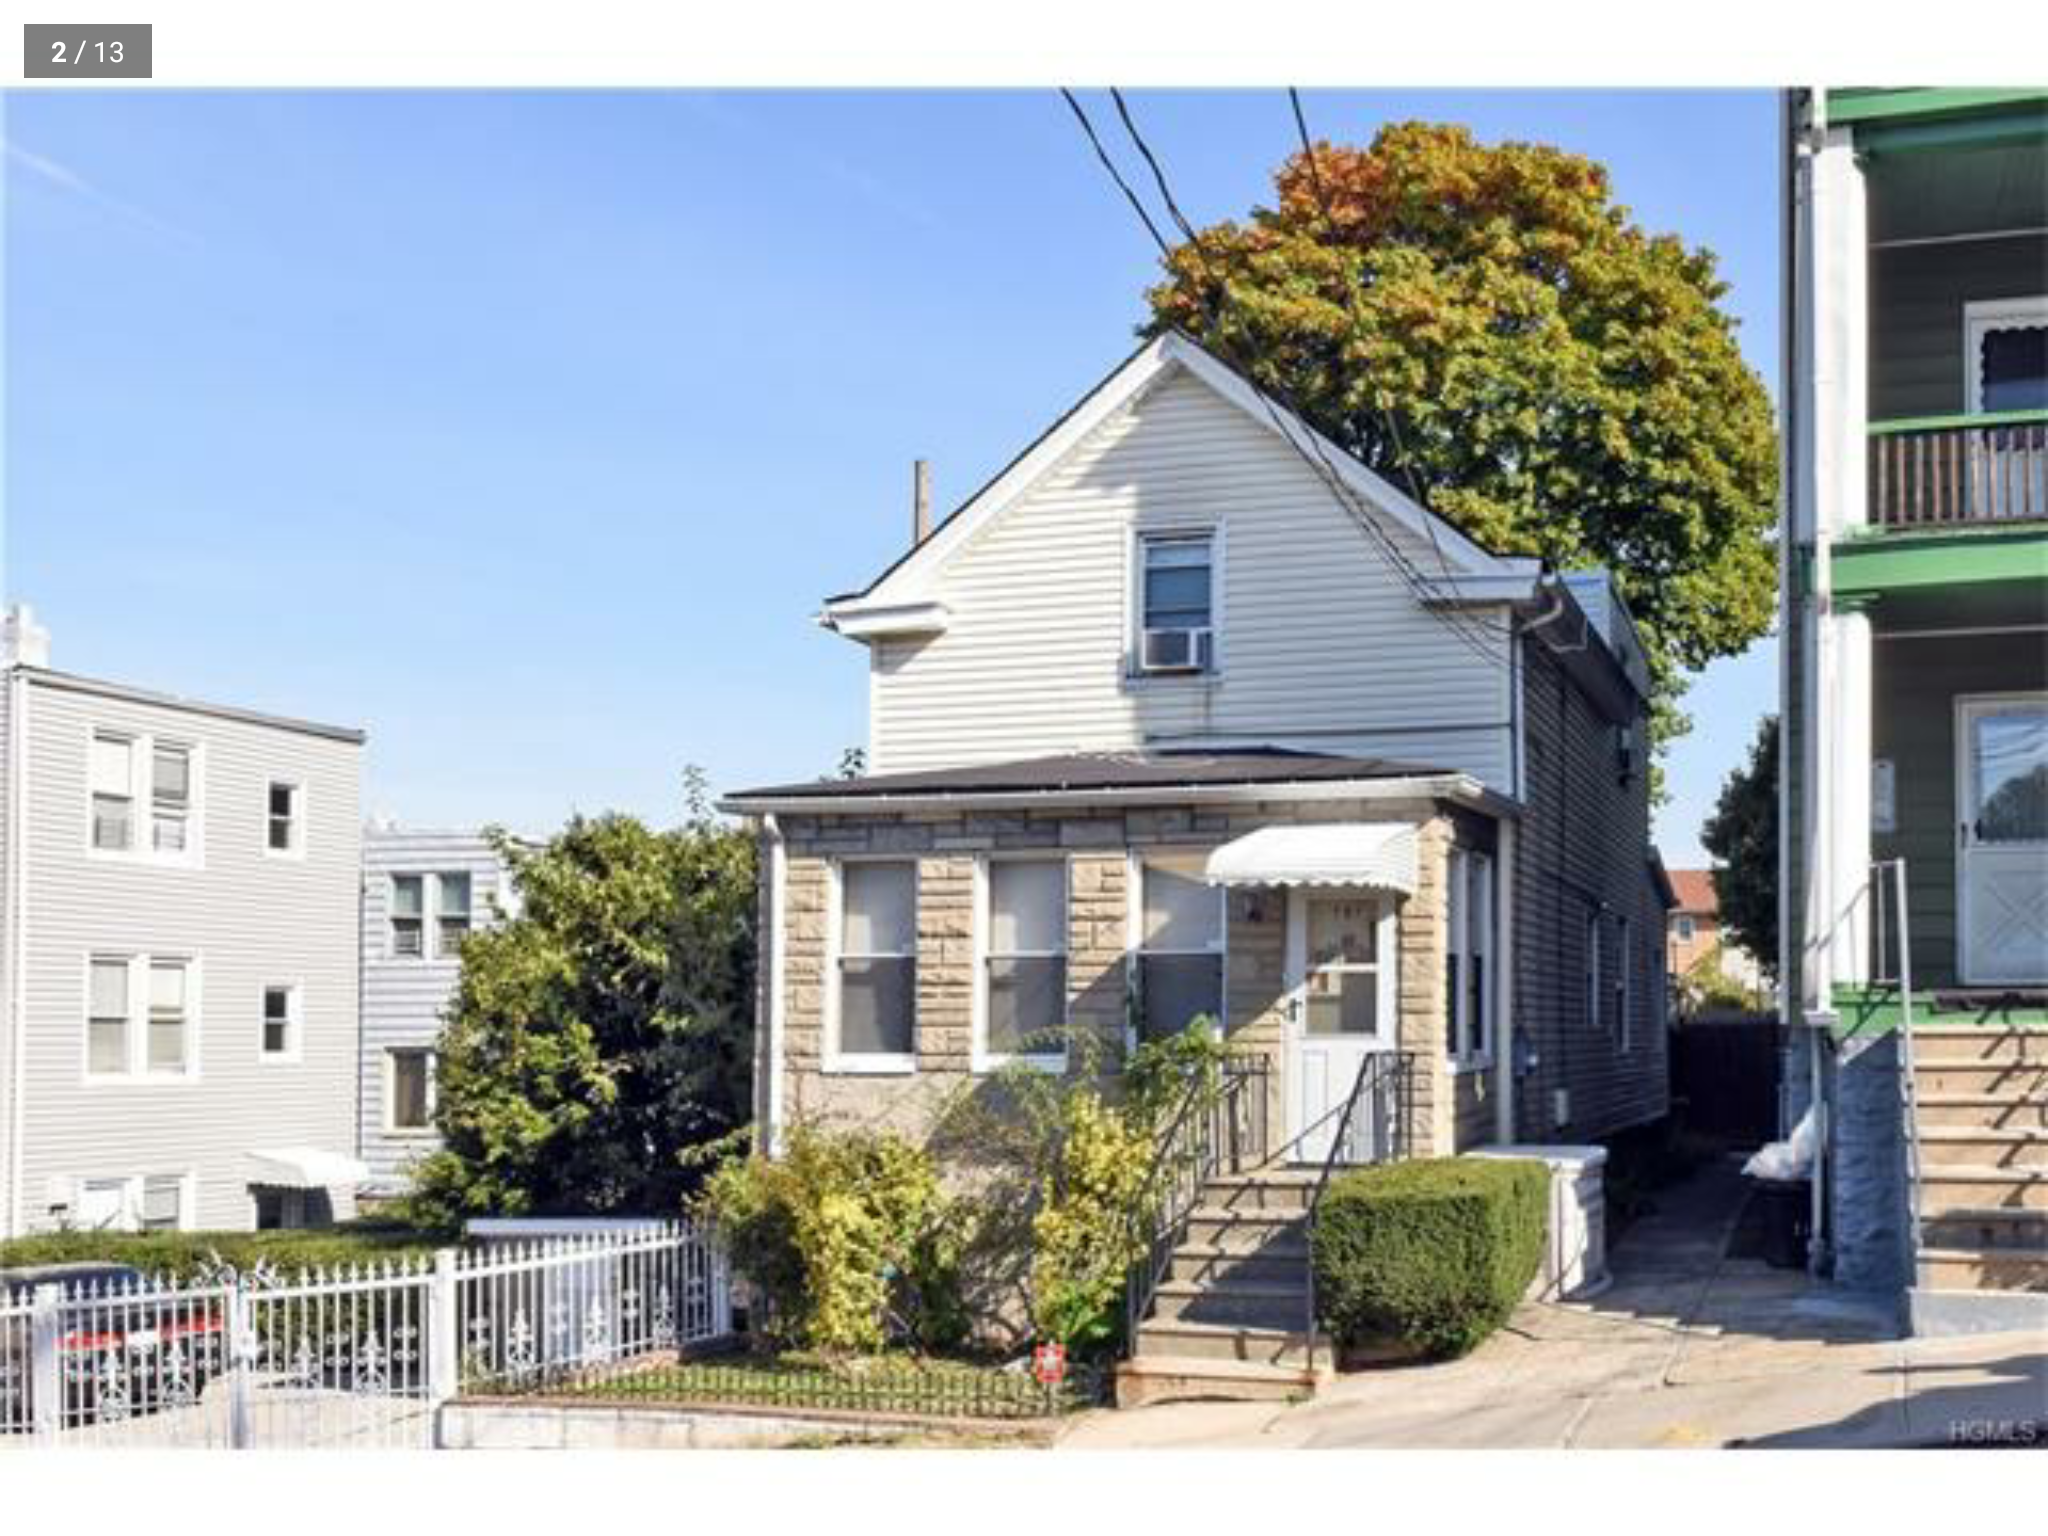 161 Webster Avenue  Yonkers, NY 10701